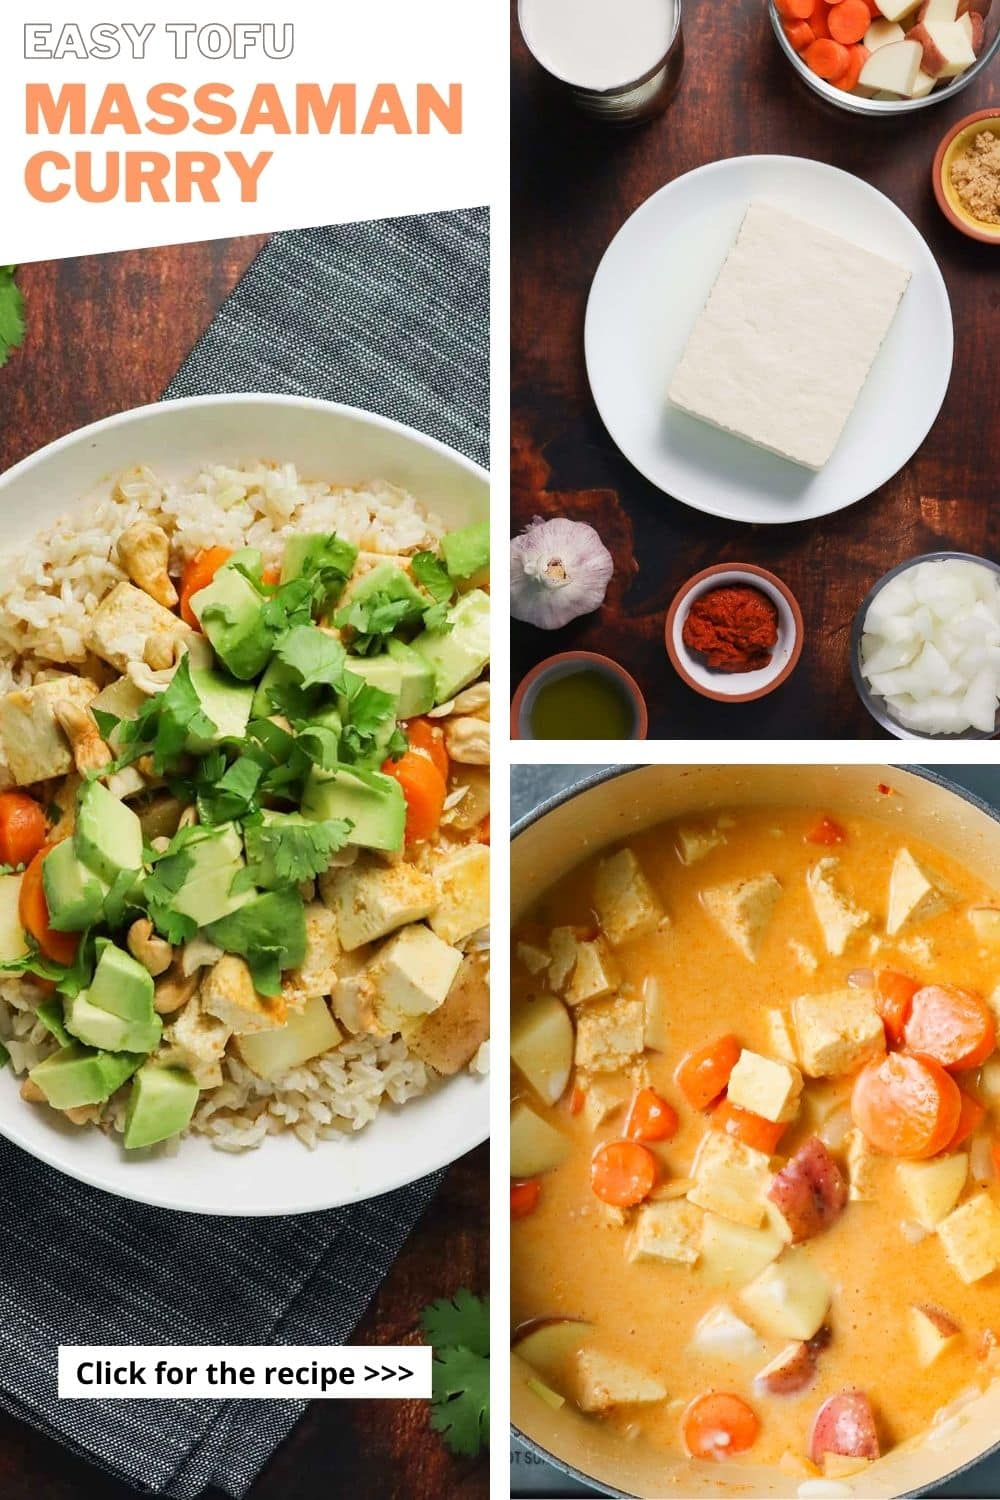 image collage showing curry in a bowl, ingredients on a table, and the massaman curry tofu in the pot